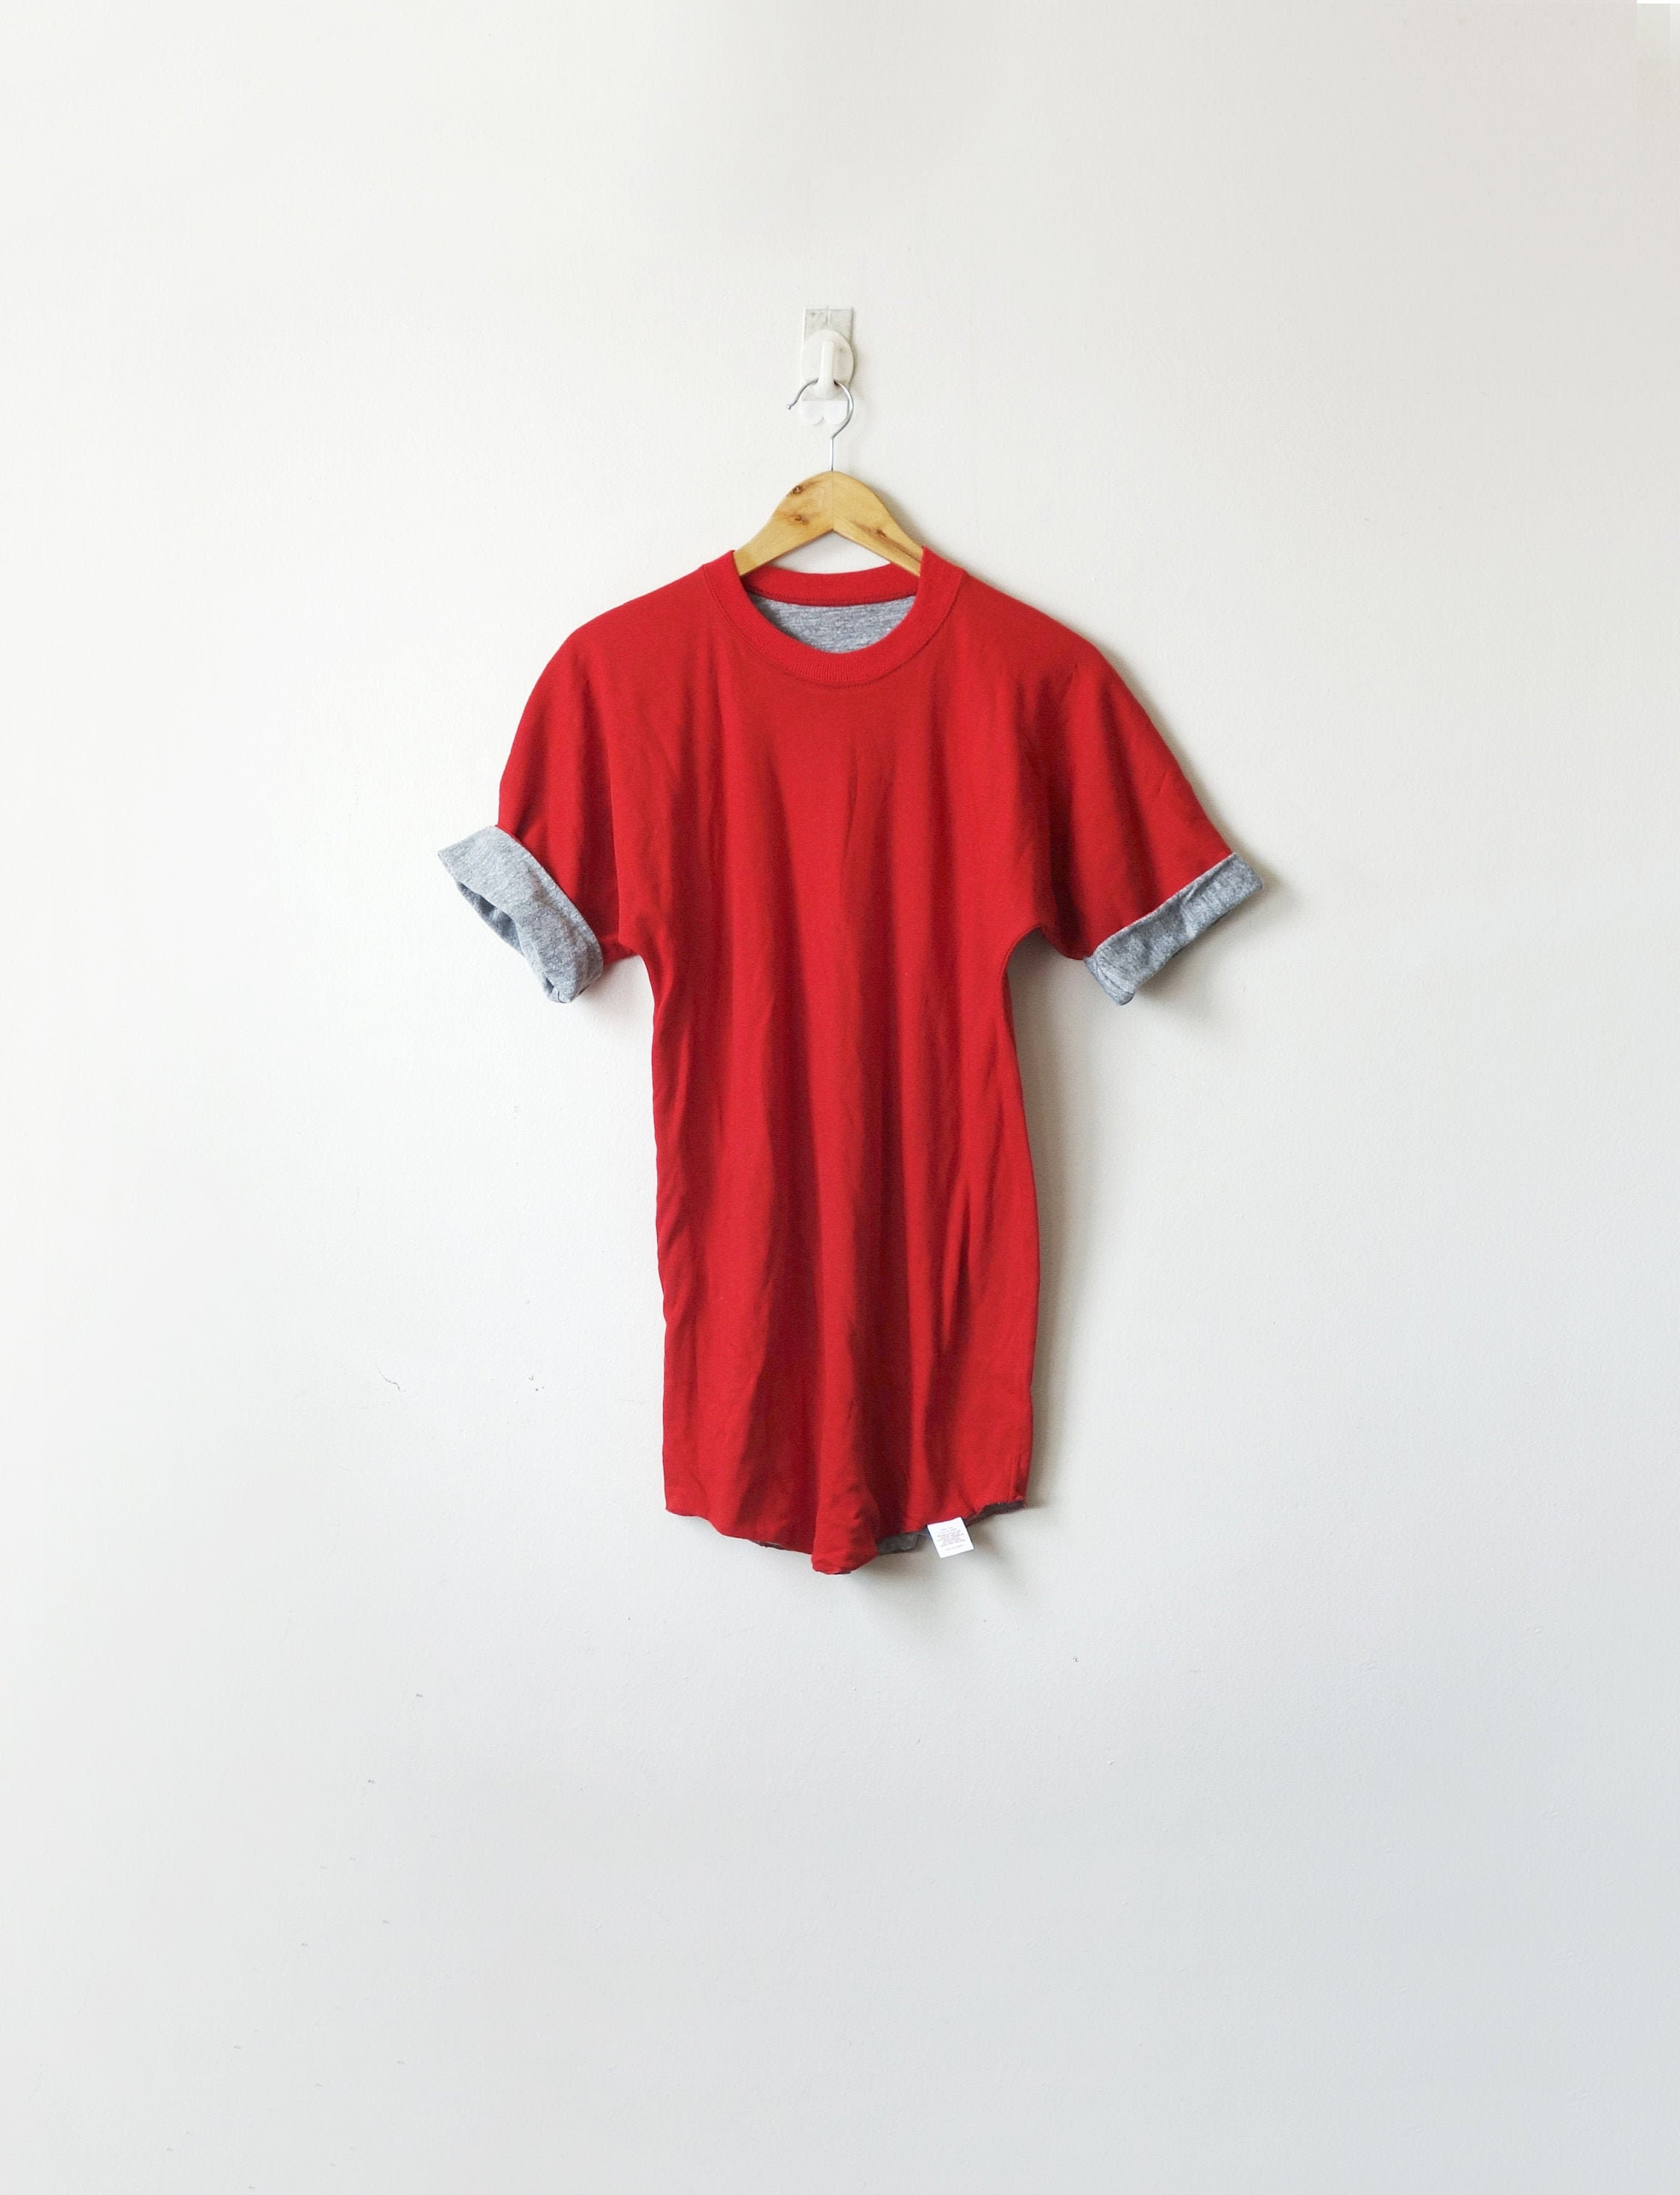 1970s Mens Shirt Styles – Vintage 70s Shirts for Guys 70S Russell Athletic Rollcuff Red T-Shirt - Vintage 1970S Mens M $0.00 AT vintagedancer.com